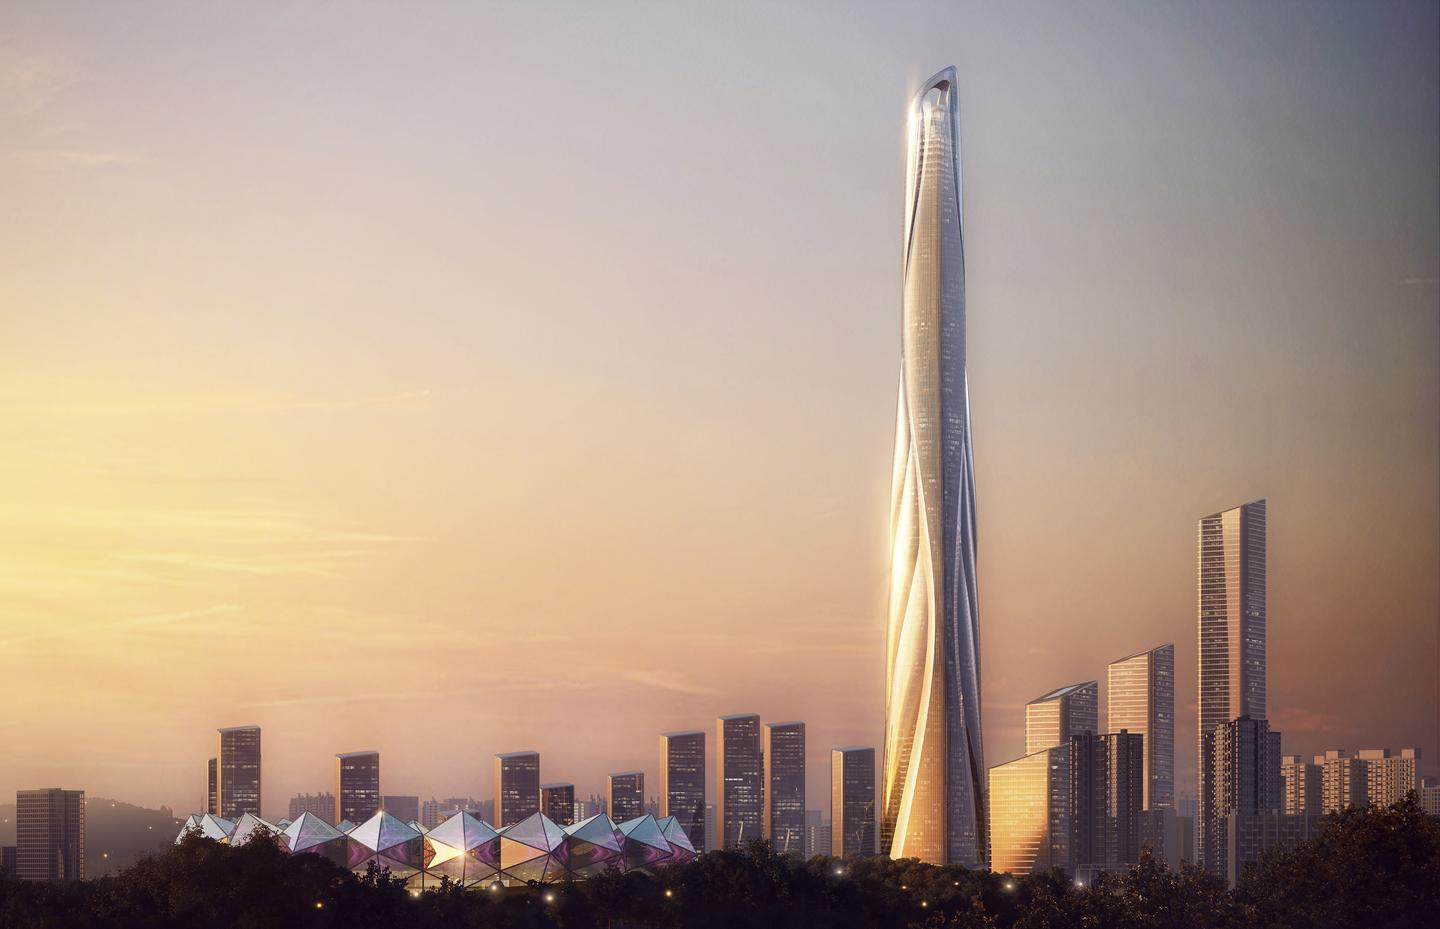 The Shenzhen-Hong Kong International Center is slated for LEED Platinum certification (a green building standard)